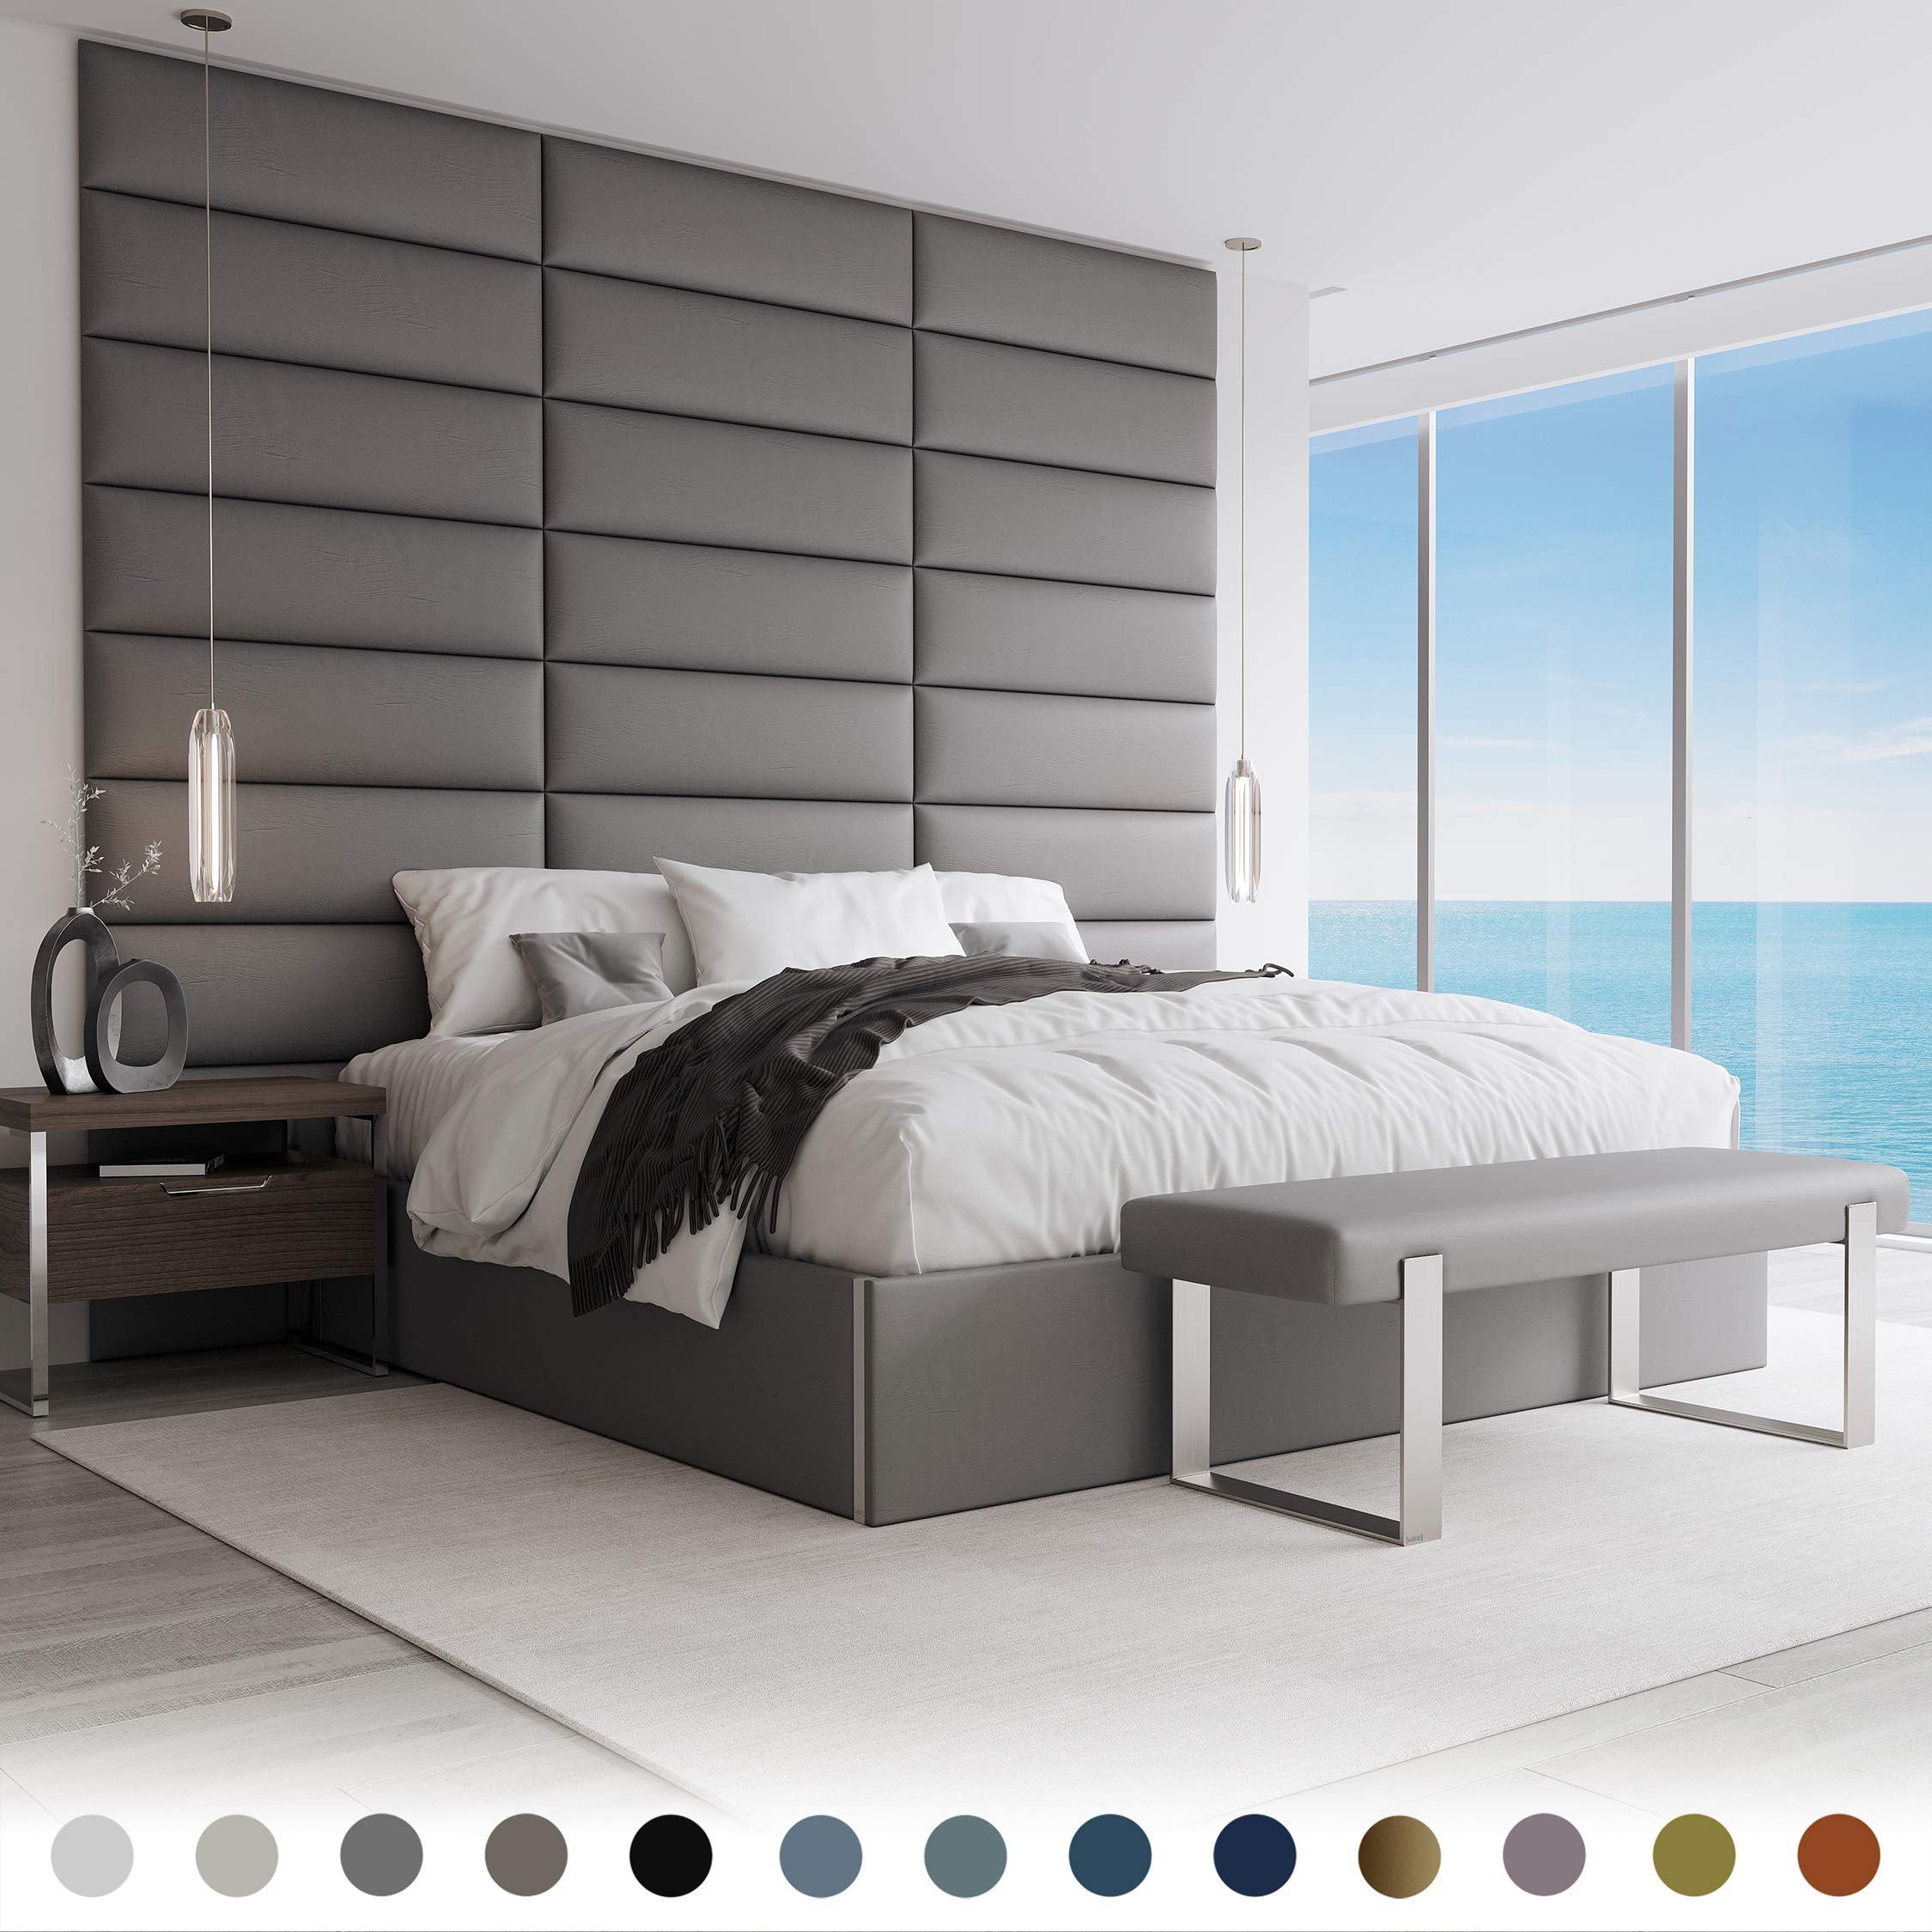 """Vänt Upholstered Wall Panels - Queen/Full Size Wall Mounted Headboards- Vintage Leather Gray Pewter - Pack of 4 Panels (Each Individual Panel 30""""x11.5"""")"""